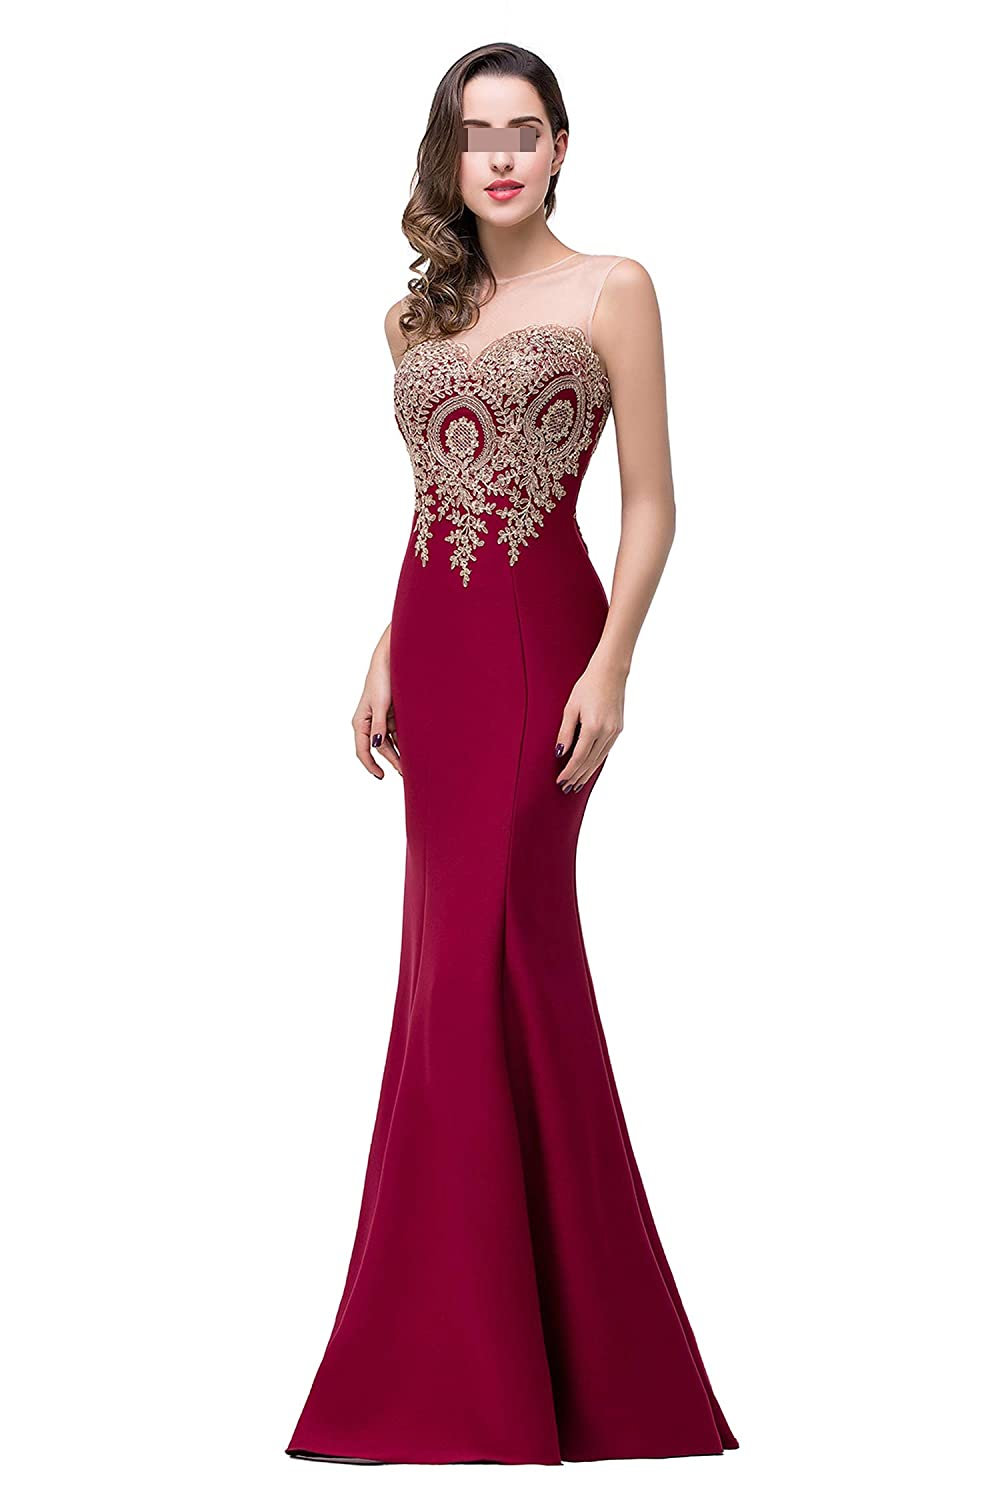 Mermaid New Royal Blue Long Evening Dress Longue Formal Party Evening Gown with Appliques,Green,10